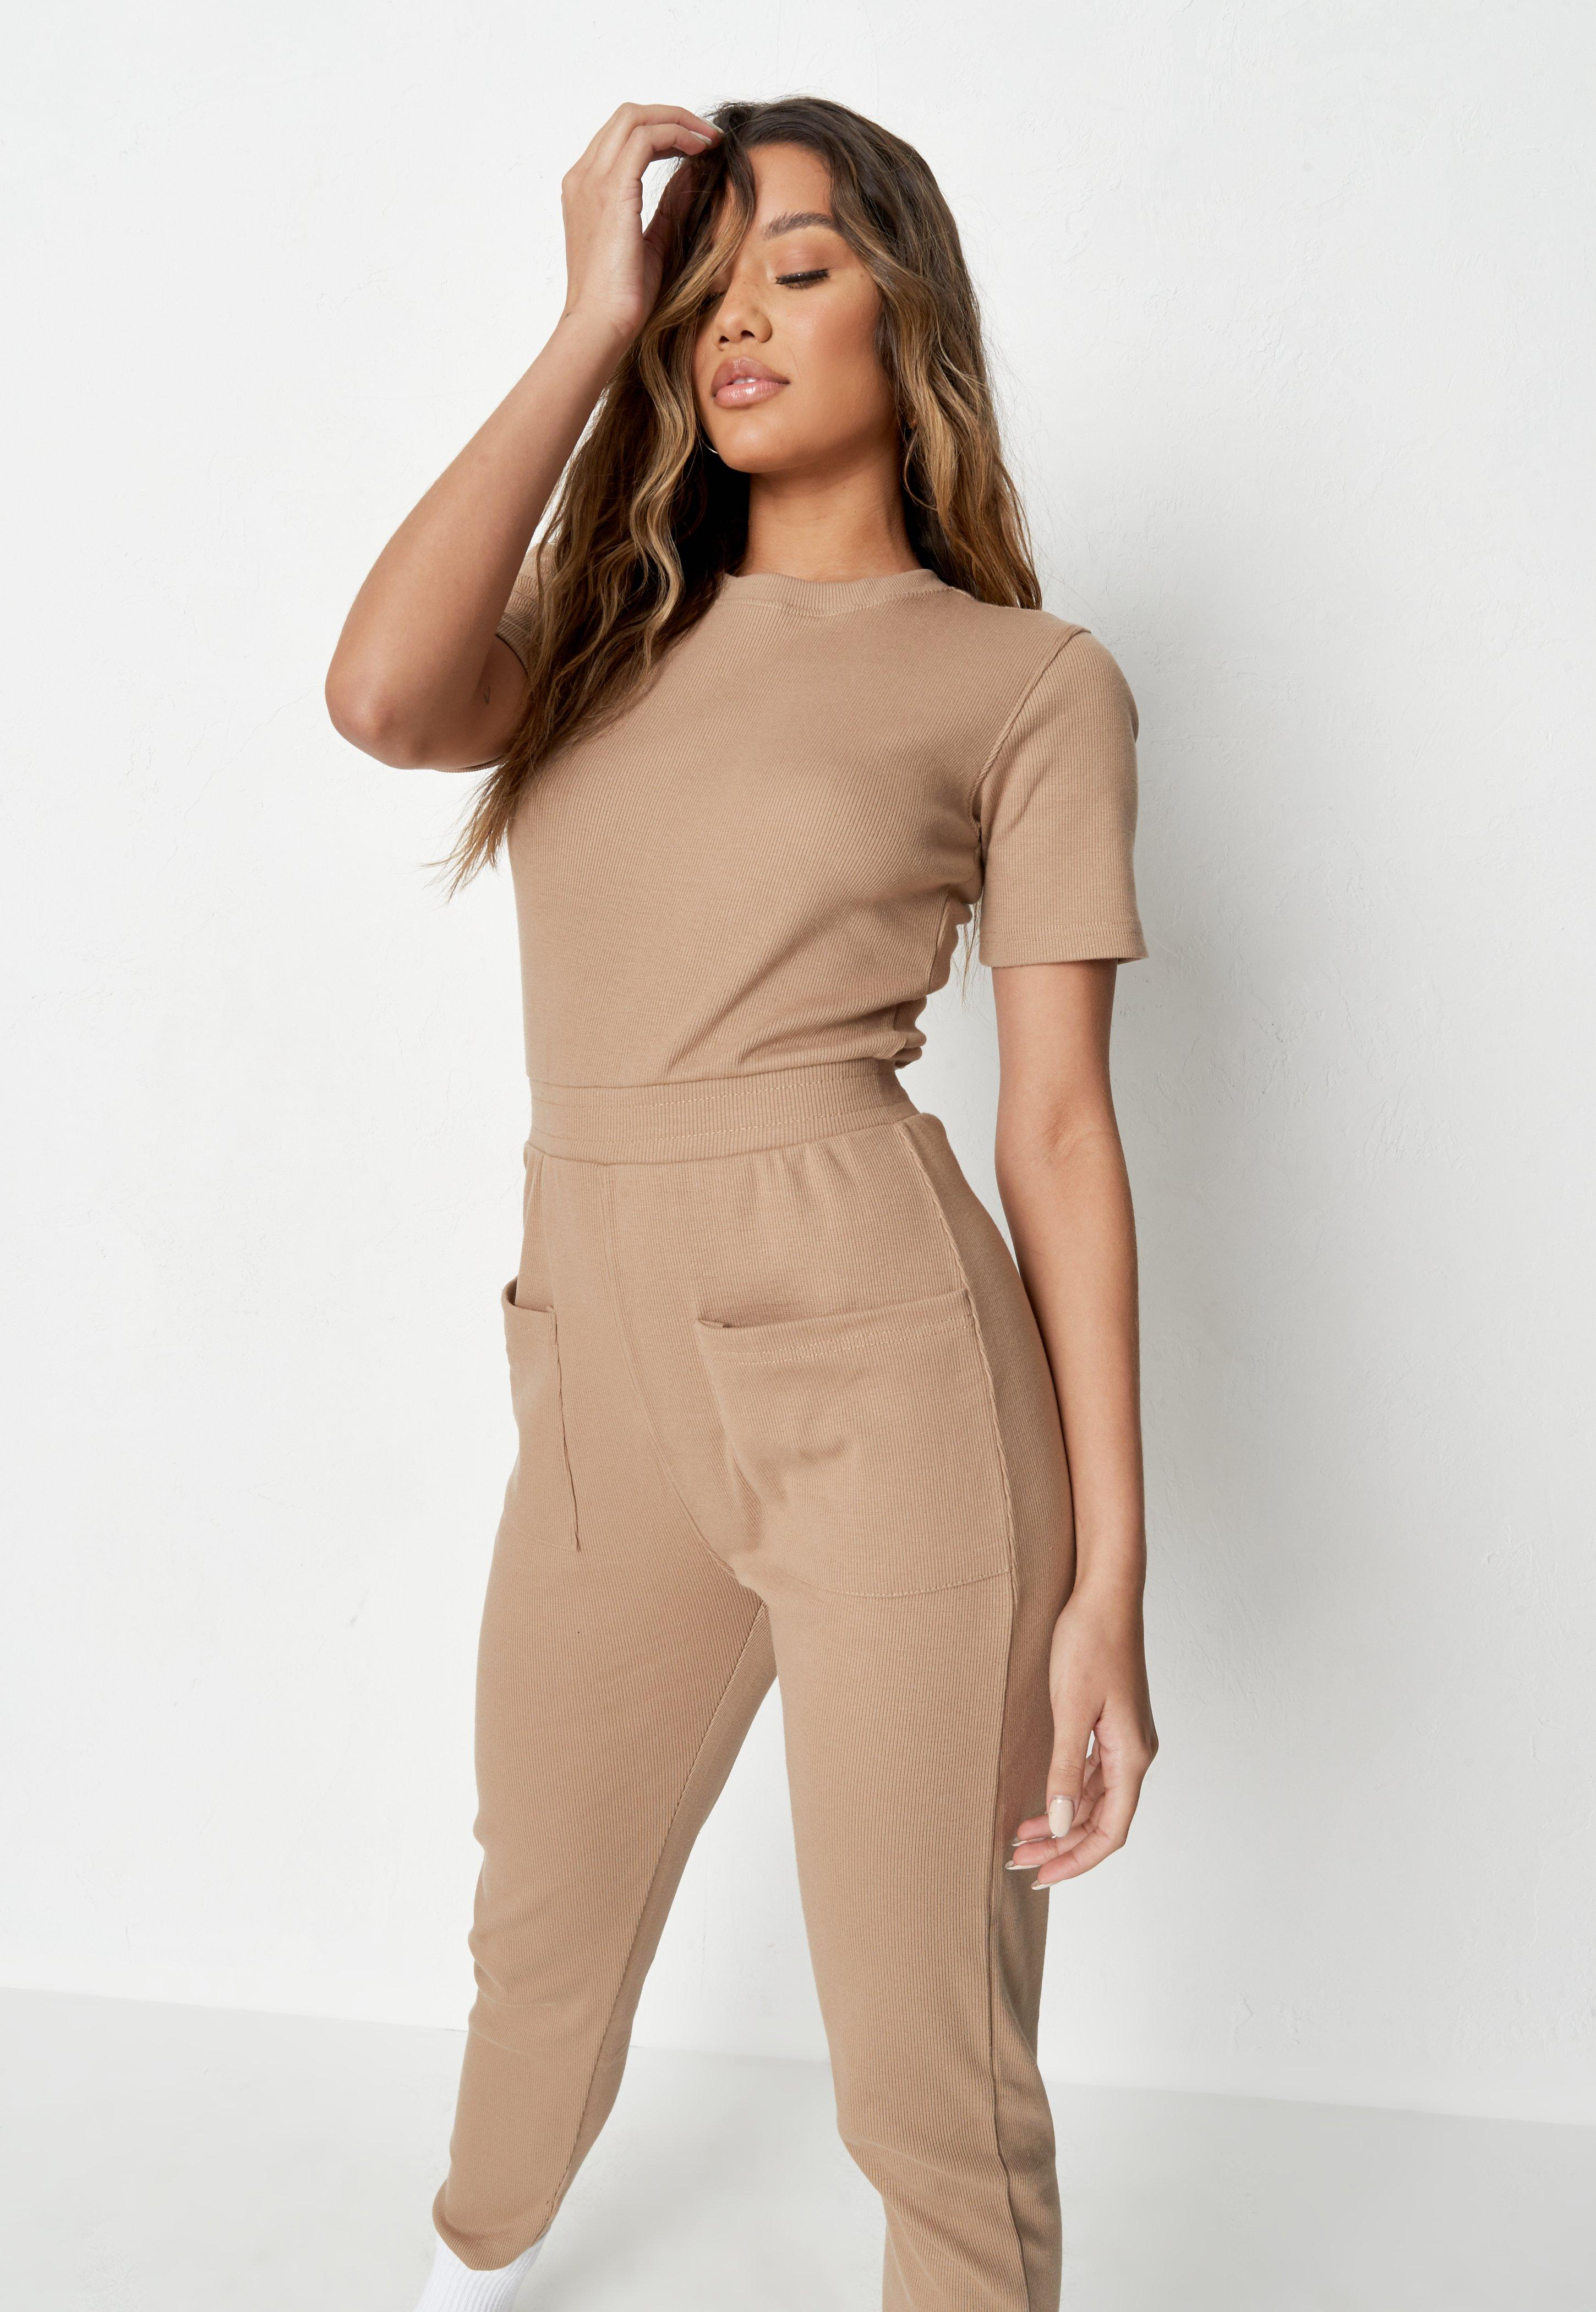 cb4780381 Jumpsuits Online   White, Red & Black Jumpsuits - Missguided